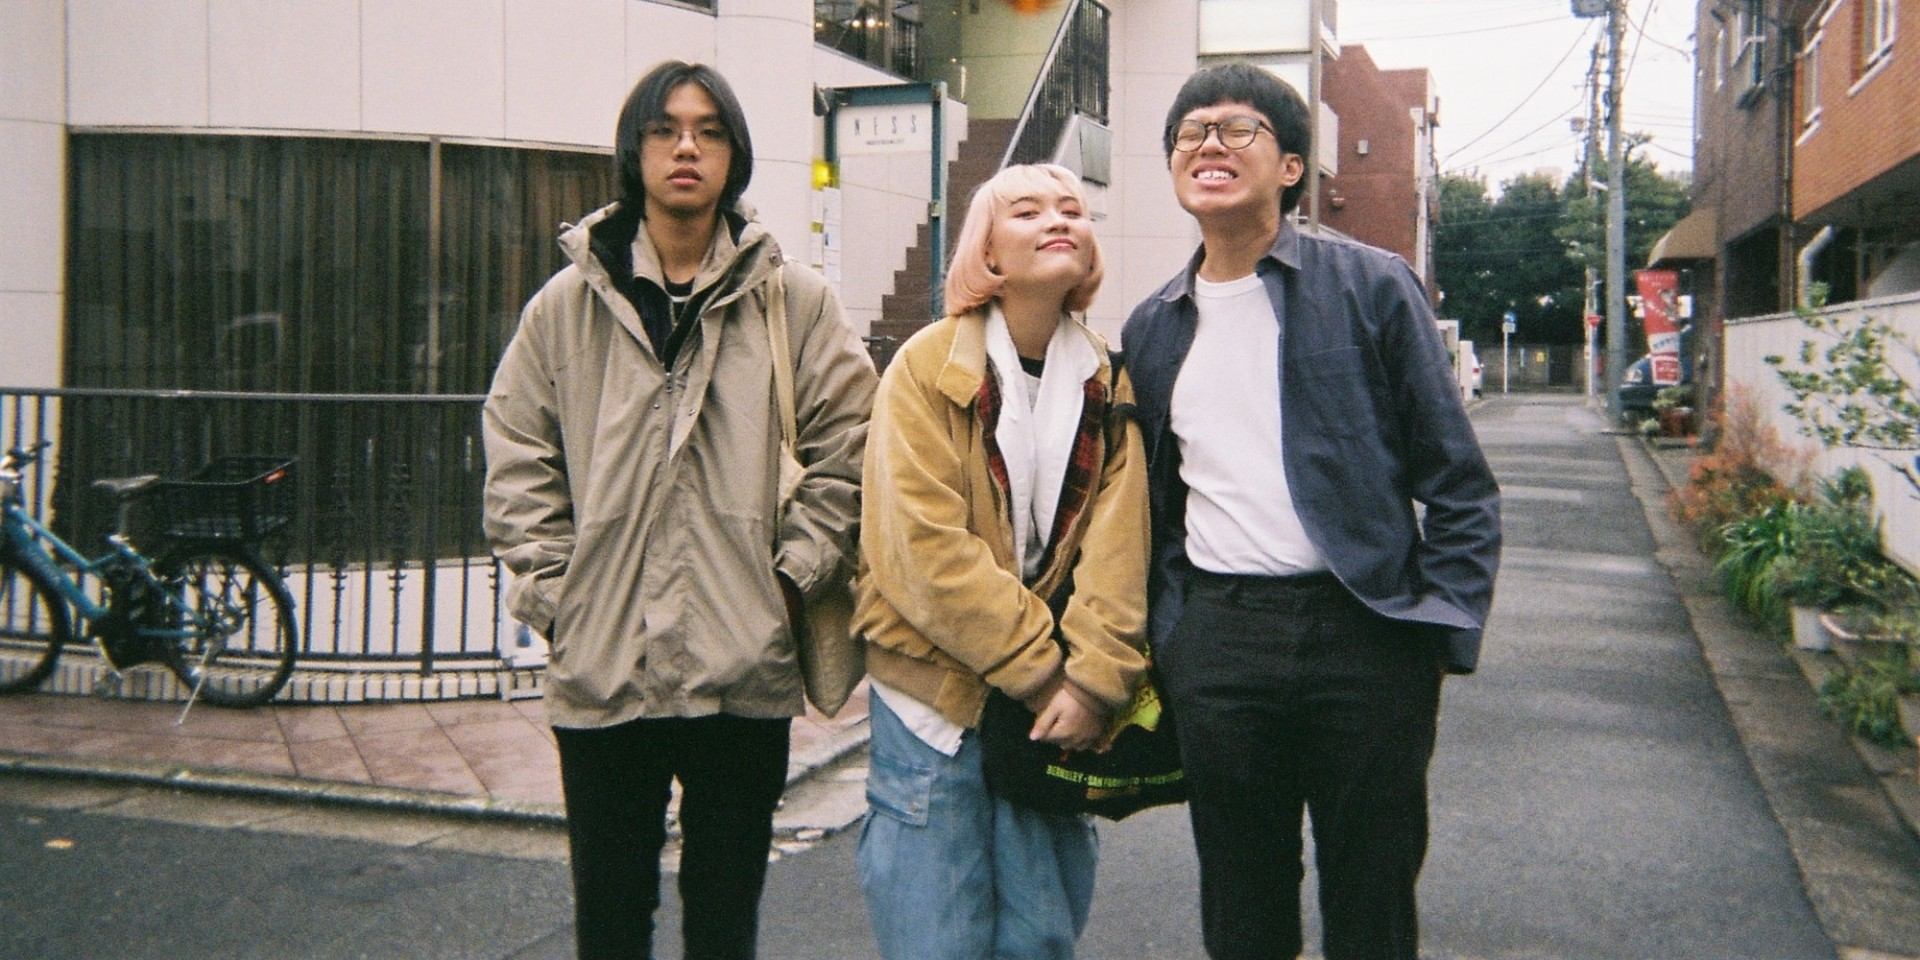 """""""I'm proud to be in this community of Asian bands"""": An interview with Sobs about its Japan tour"""